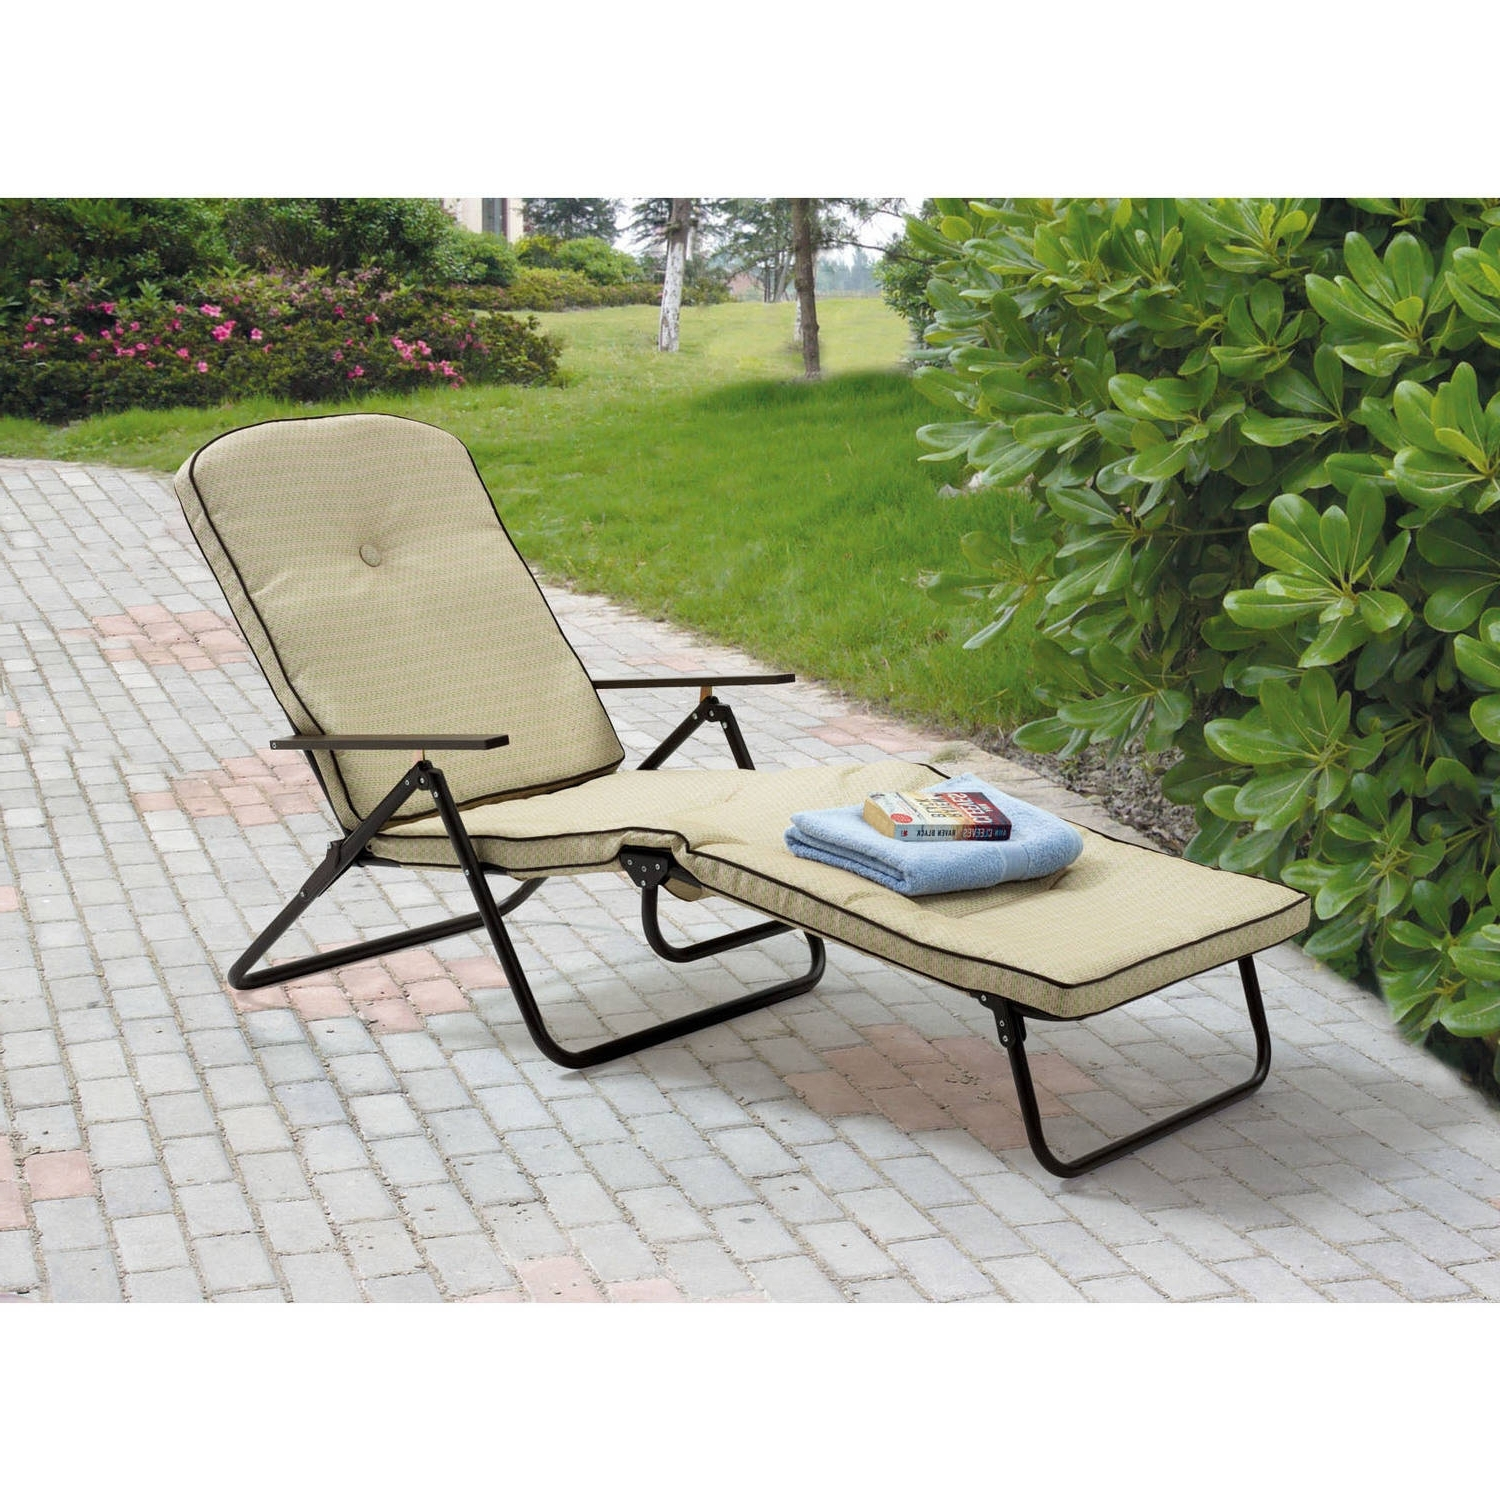 Latest Folding Chaise Lounge Chairs With Regard To Mainstays Sand Dune Outdoor Padded Folding Chaise Lounge, Tan (View 13 of 15)